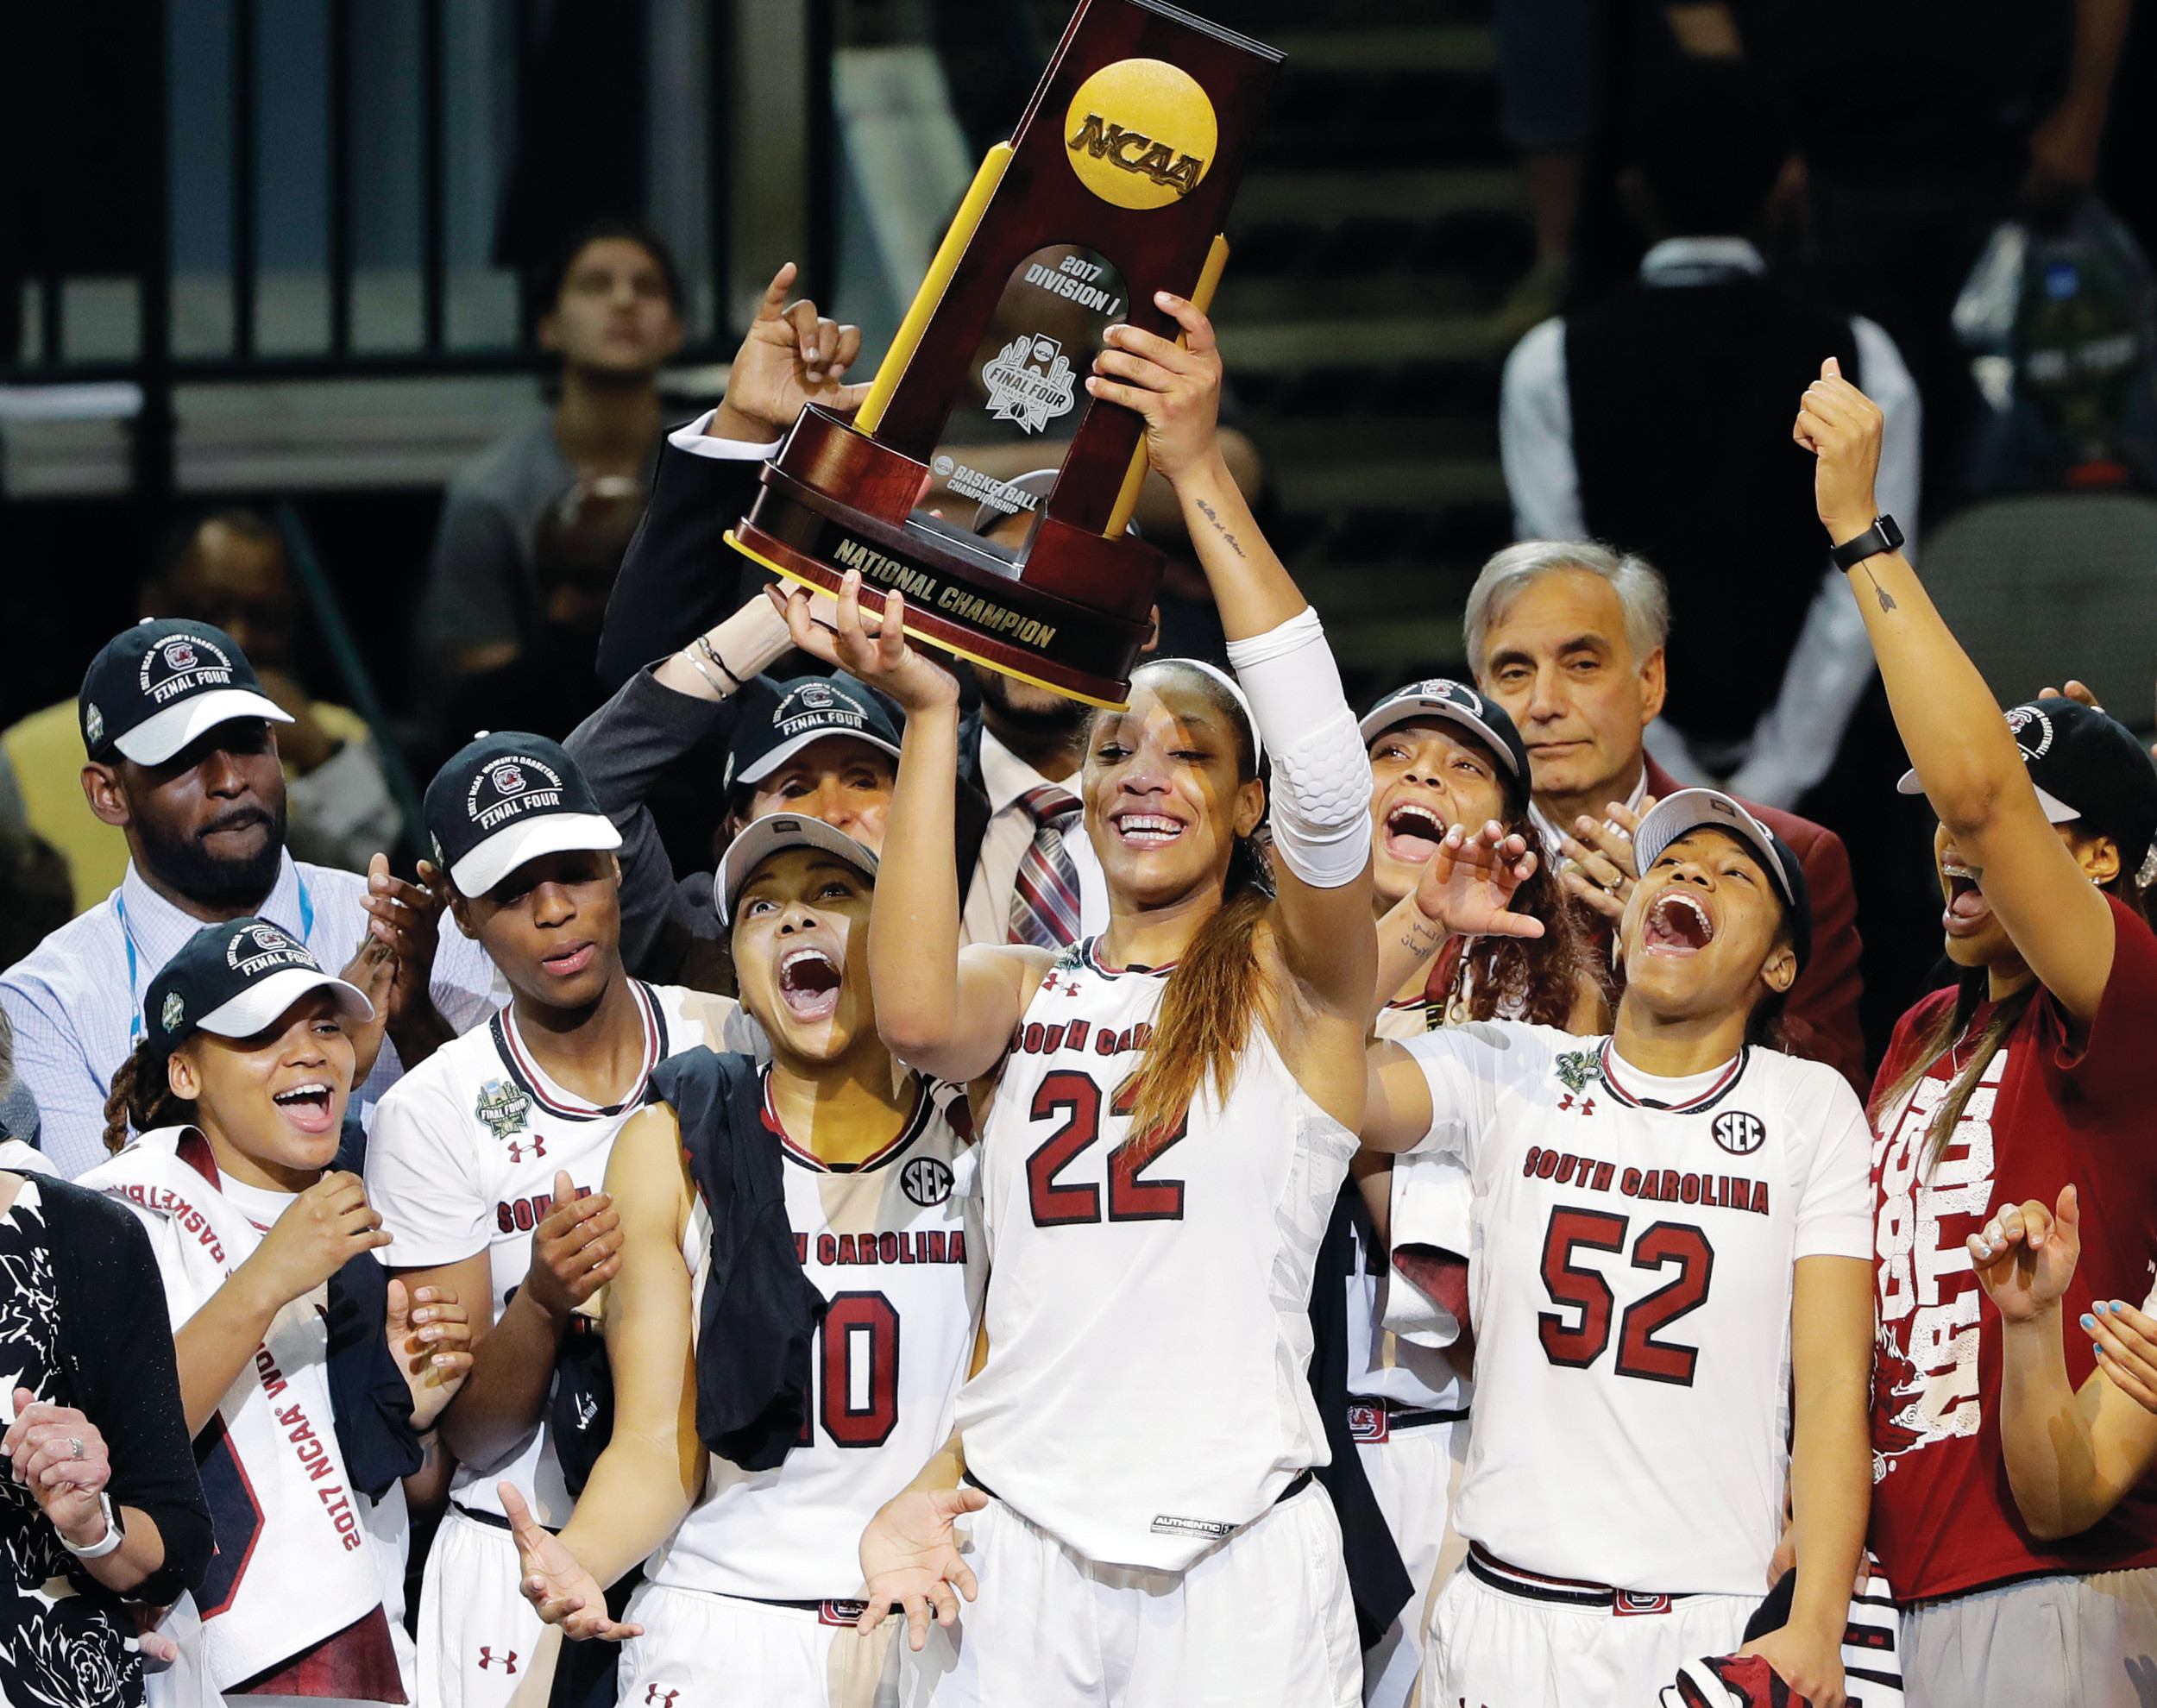 South Carolina forward A'ja Wilson (22) holds up the national championship trophy as she celebrates with teammates after their 67-55 win over Mississippi State in the final of last year's NCAA women's college basketball tournament in Dallas. Their title defense begins today at 6:30 p.m. at Colonial Life Arena in Columbia when they receive their championship rings and the banner is raised, followed by the season opener against Alabama State at 7.